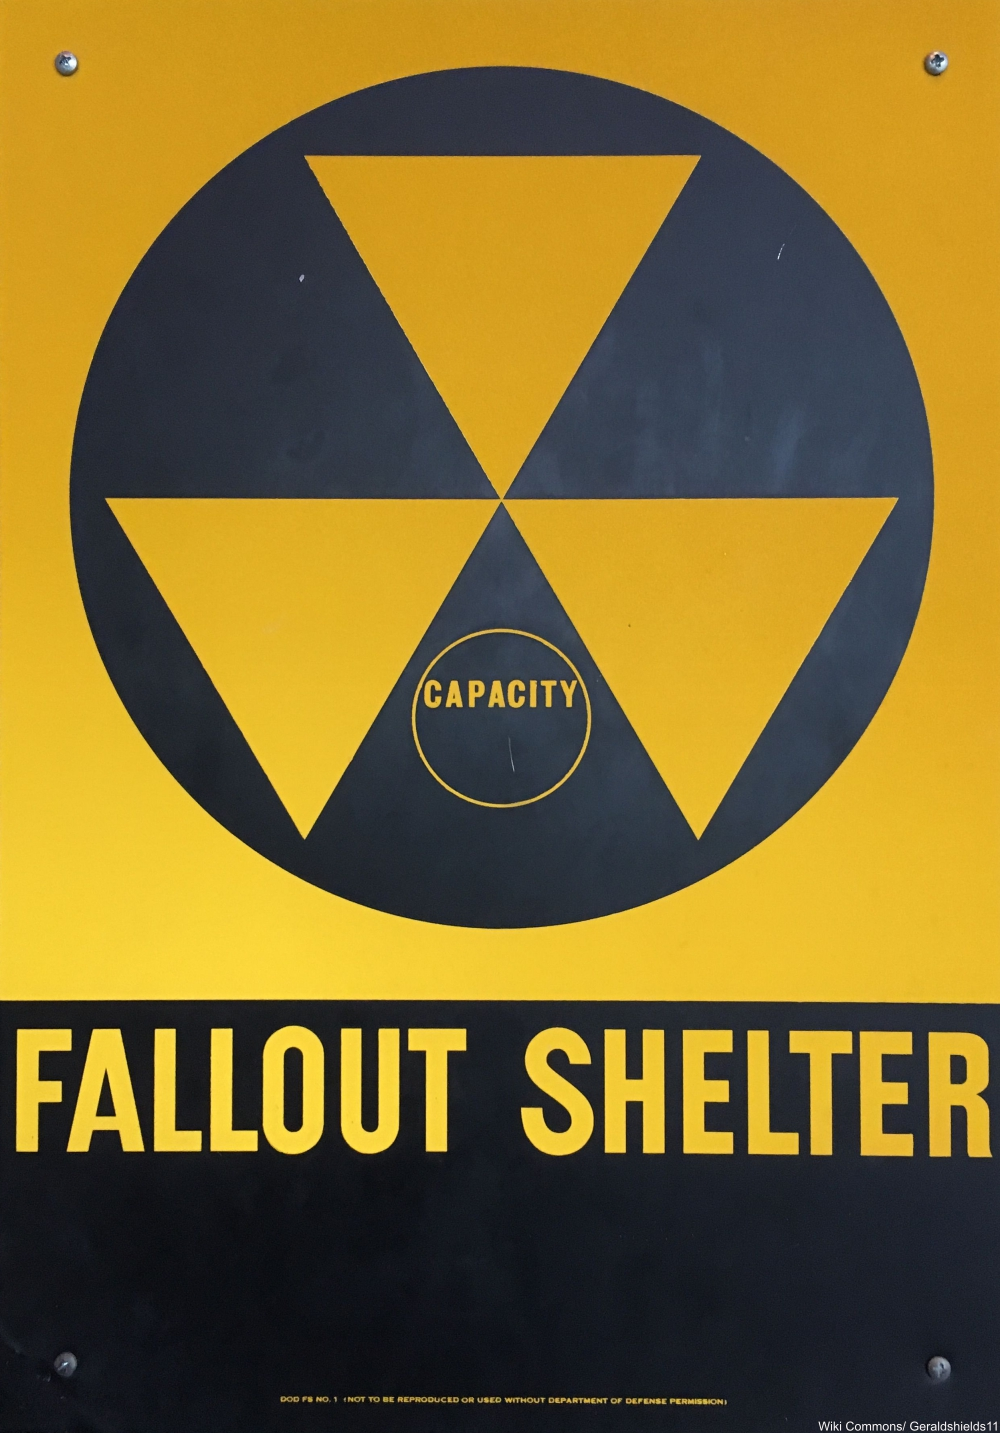 America's Cold War Obsession with Fallout Shelters